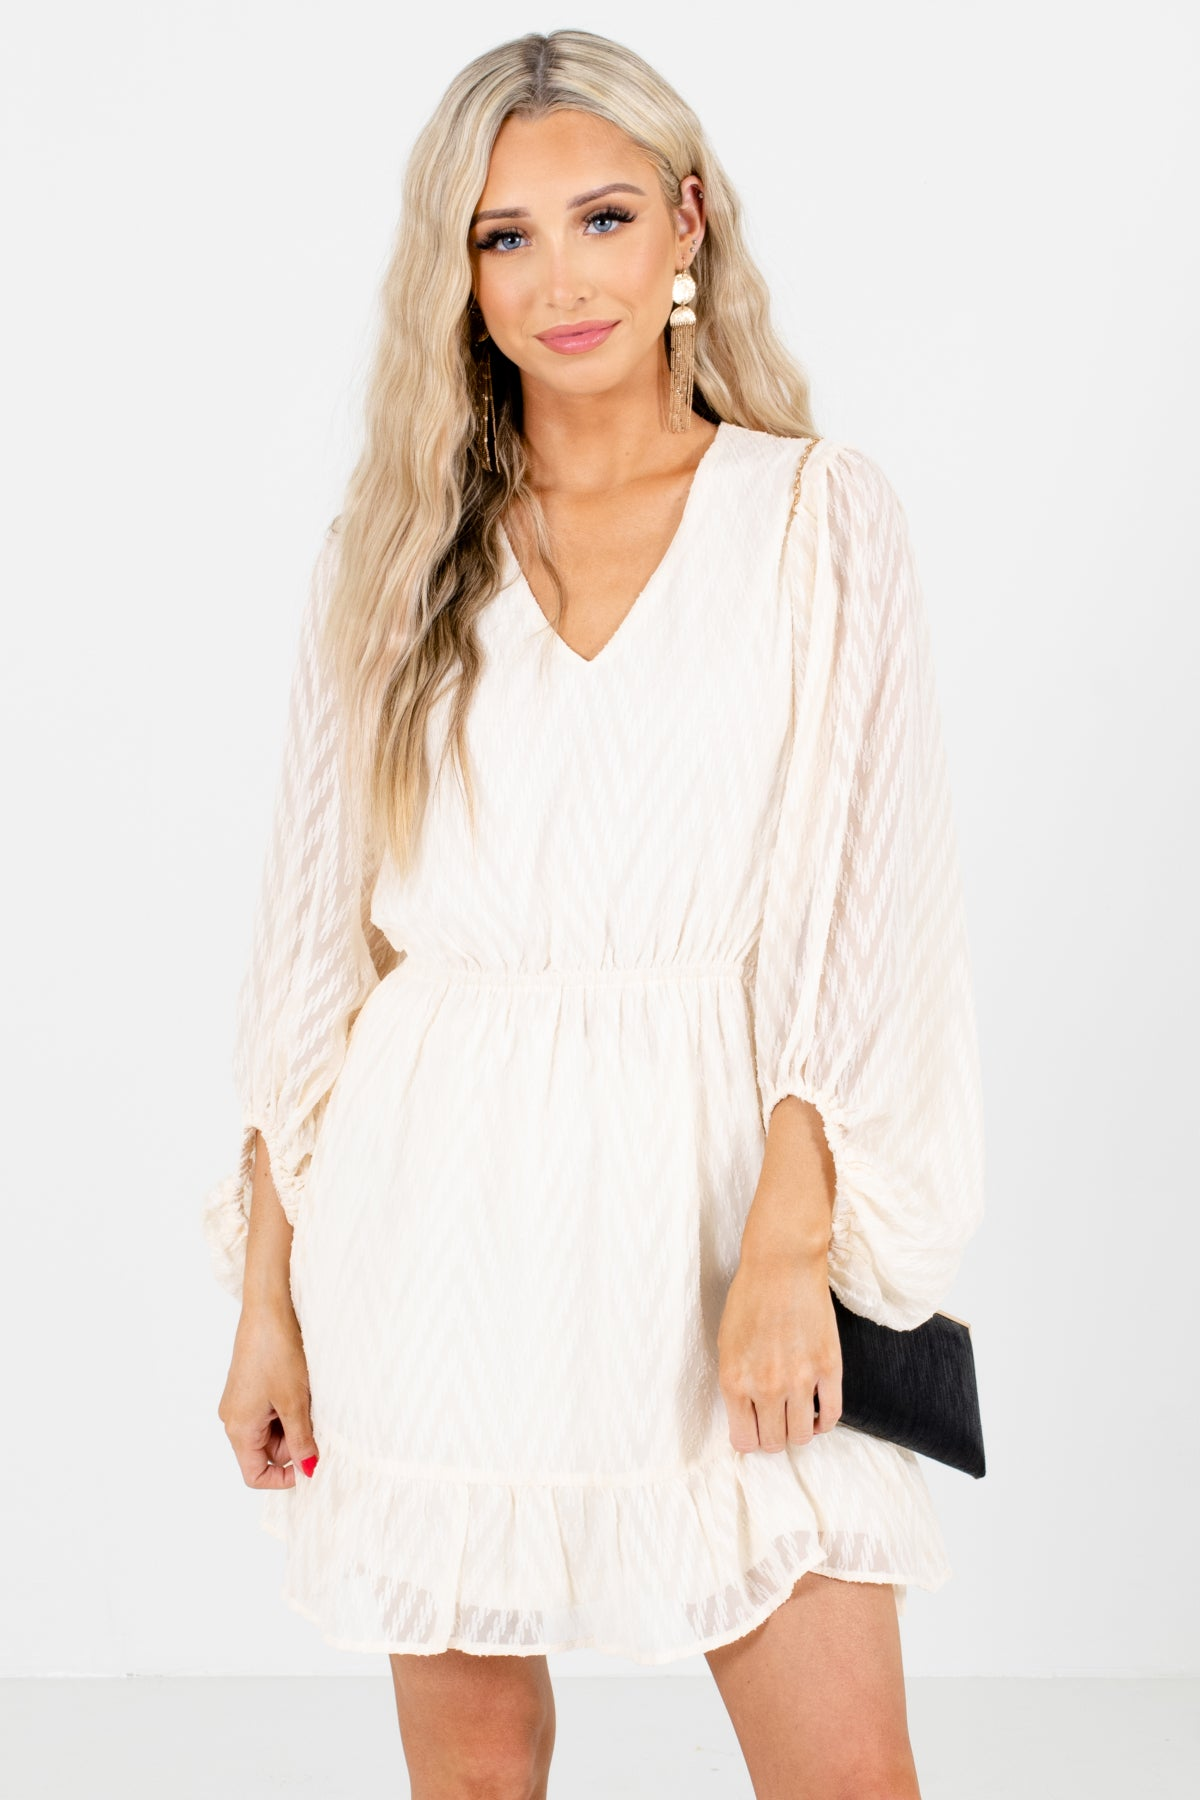 Ivory V-Neckline Boutique Mini Dresses for Women